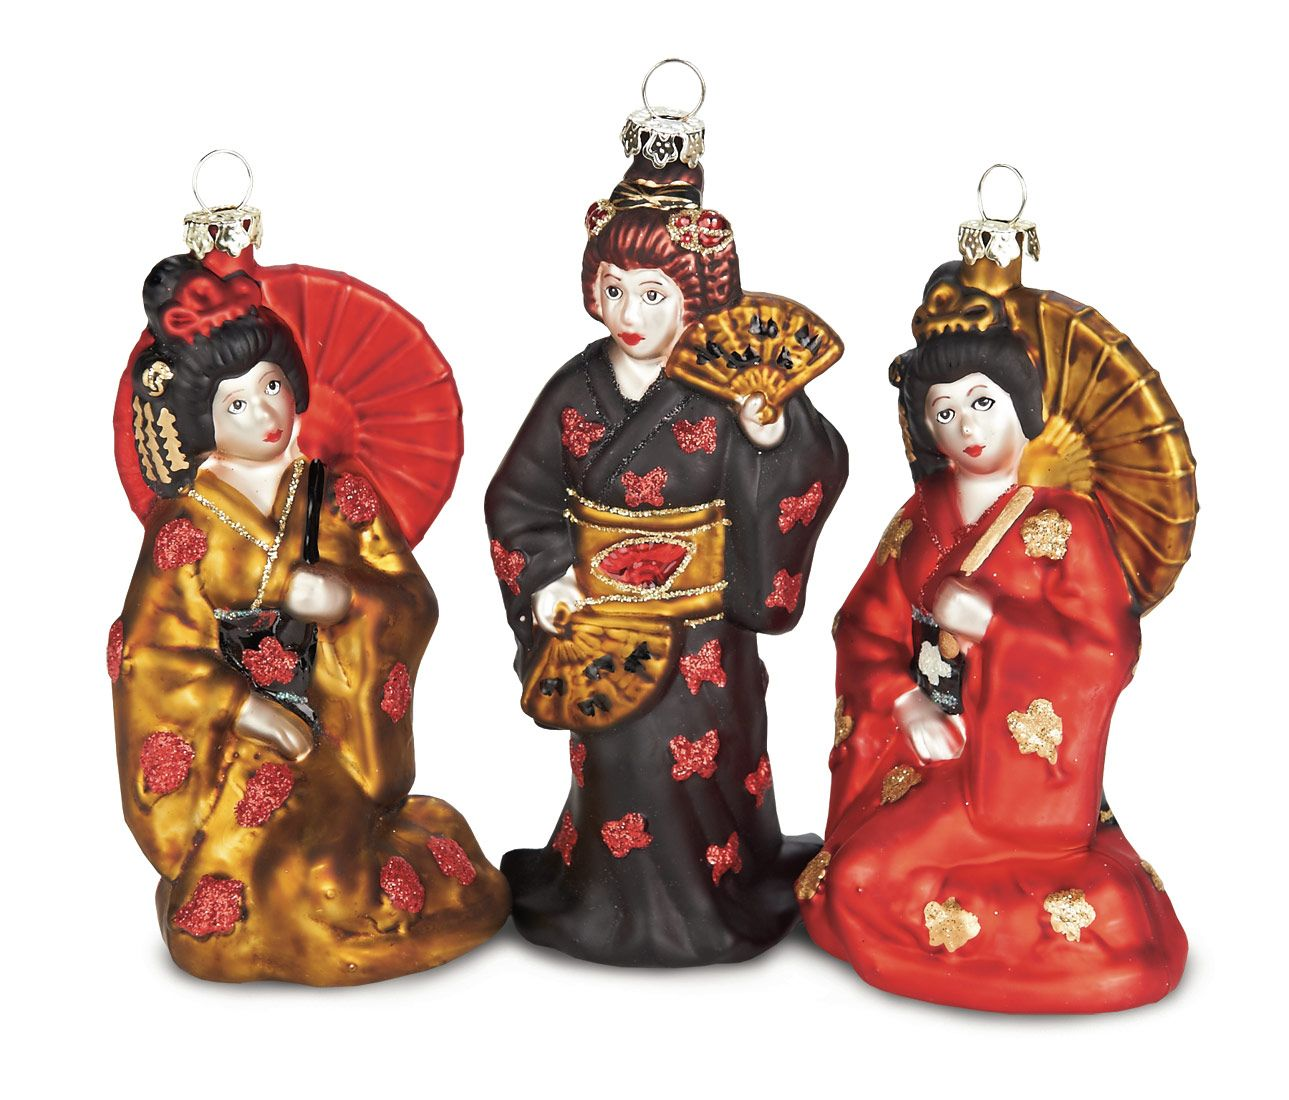 Trio Of Blown Glass Japanese Ladies Ornaments In Kimonos Dollmasters Ornaments Christmas Ornaments Japanese Ornaments